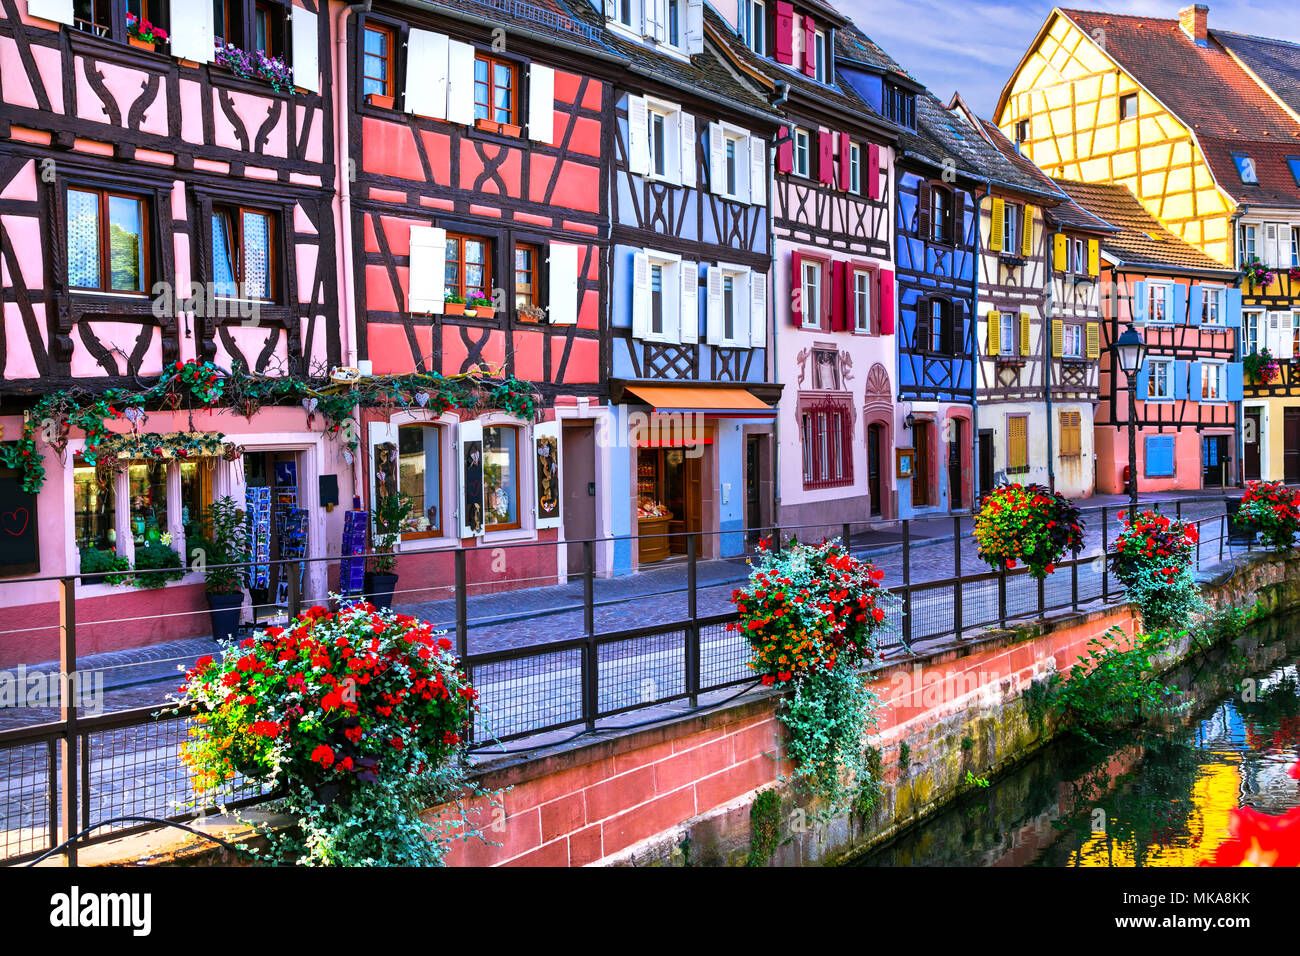 Characteristic colorful houses in Colmar town,Alsace,France. - Stock Image